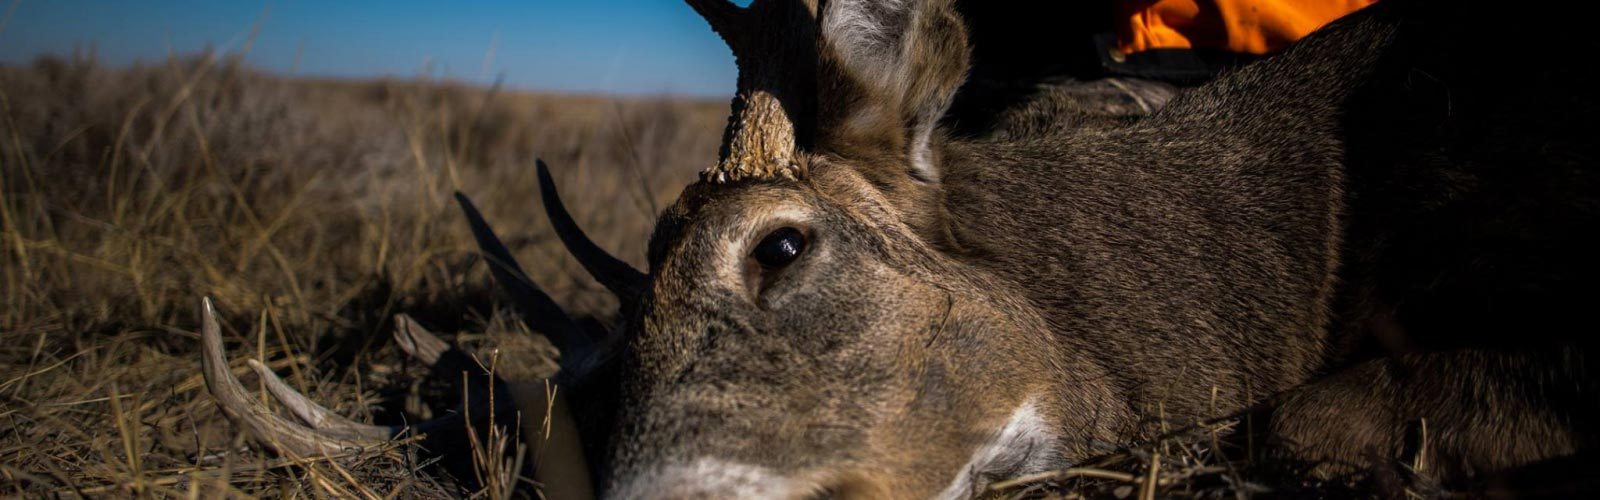 2607ad6a087c1 Through The Eyes of a Deer - News & Resources